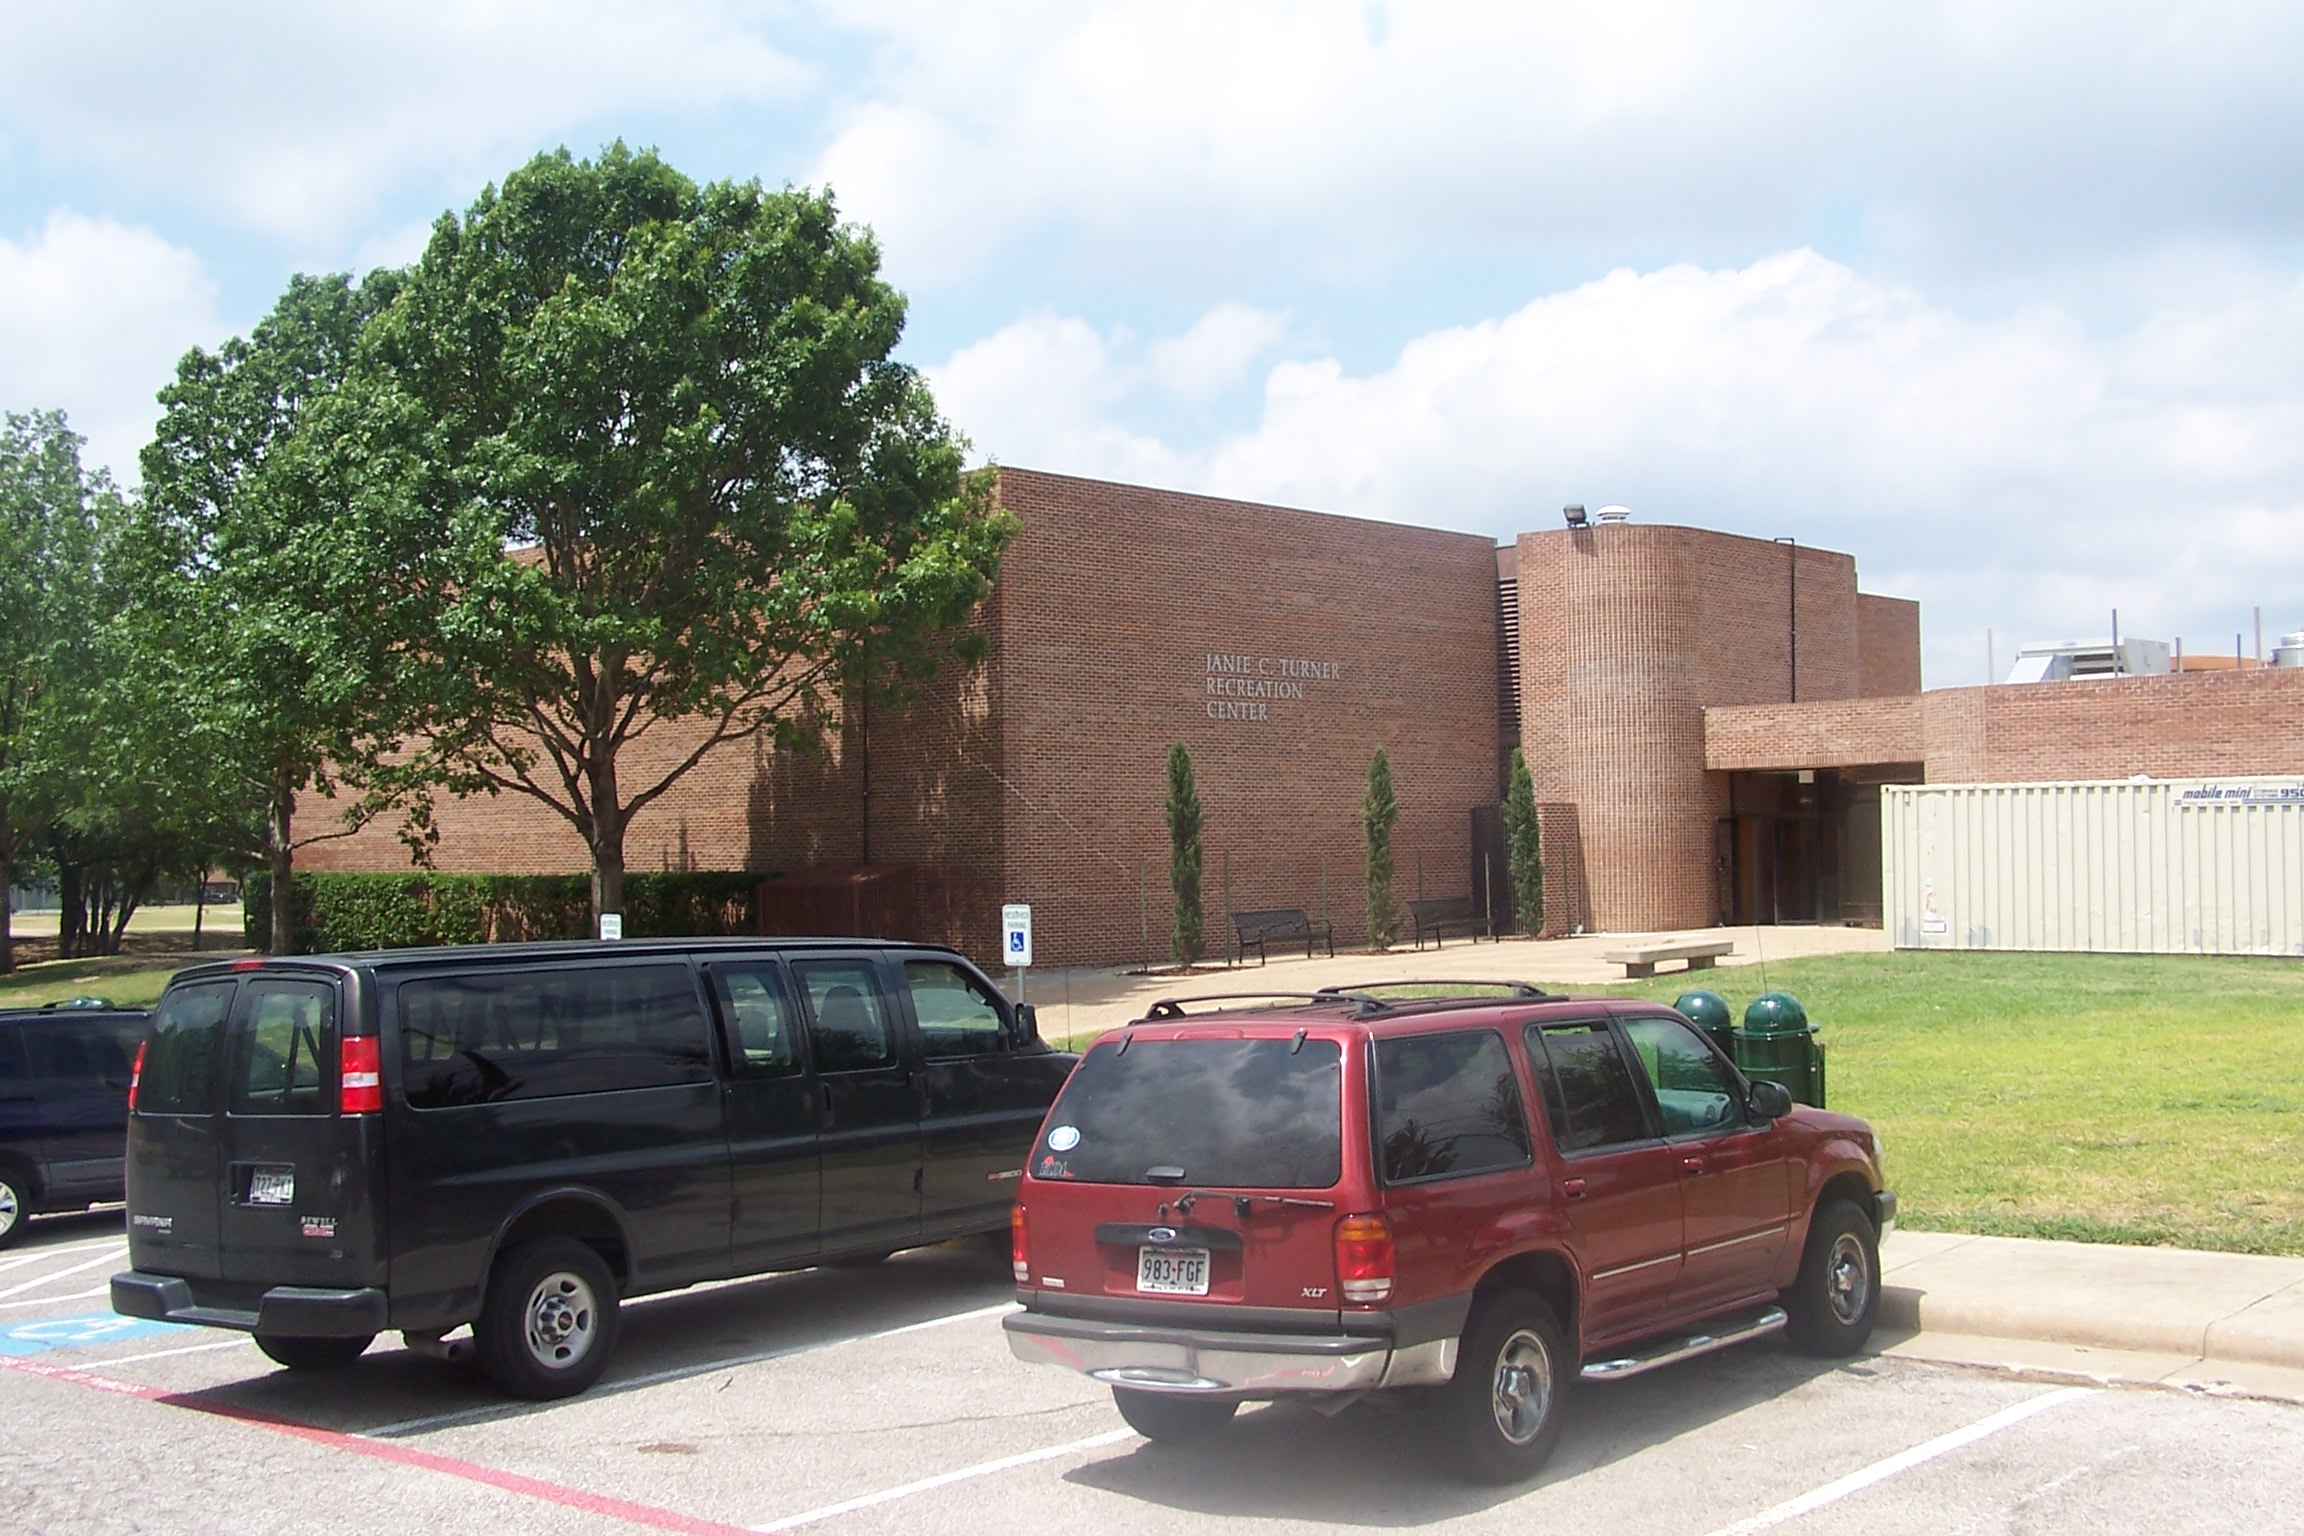 Janie C. Turner Recreation Center